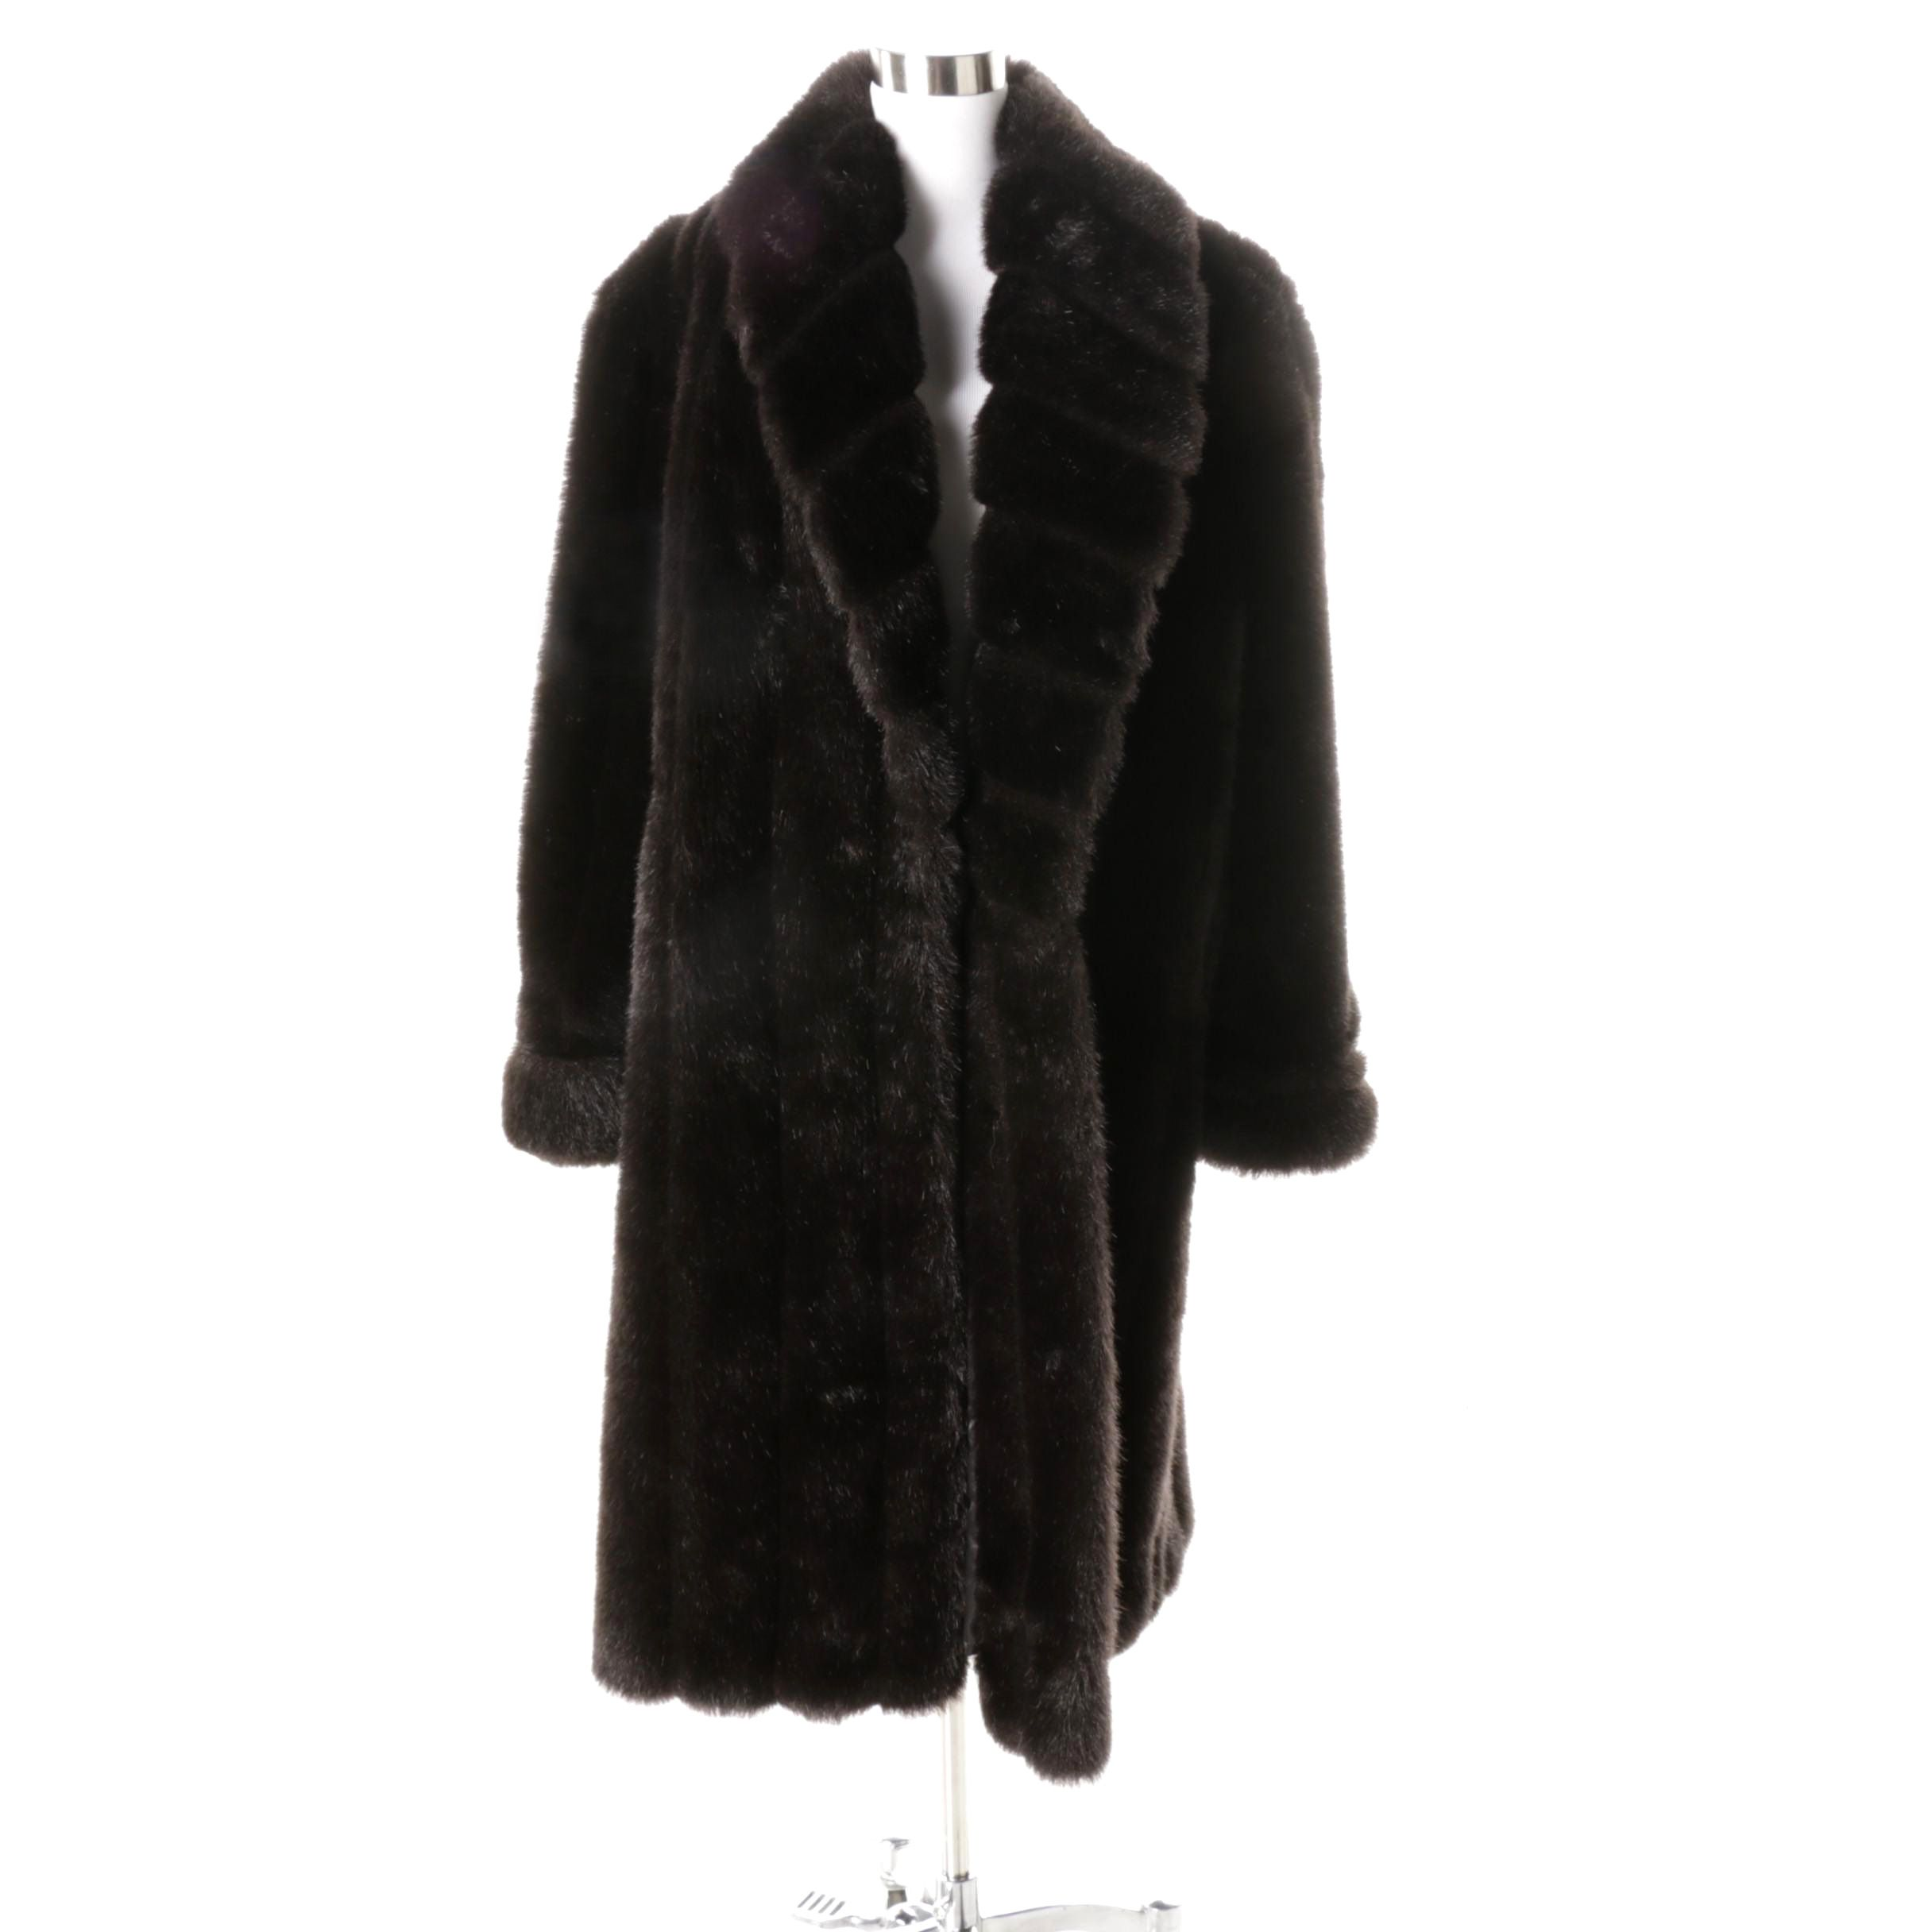 Monterey Fashions Faux Fur Coat   EBTH Monterey Fashions Faux Fur Coat